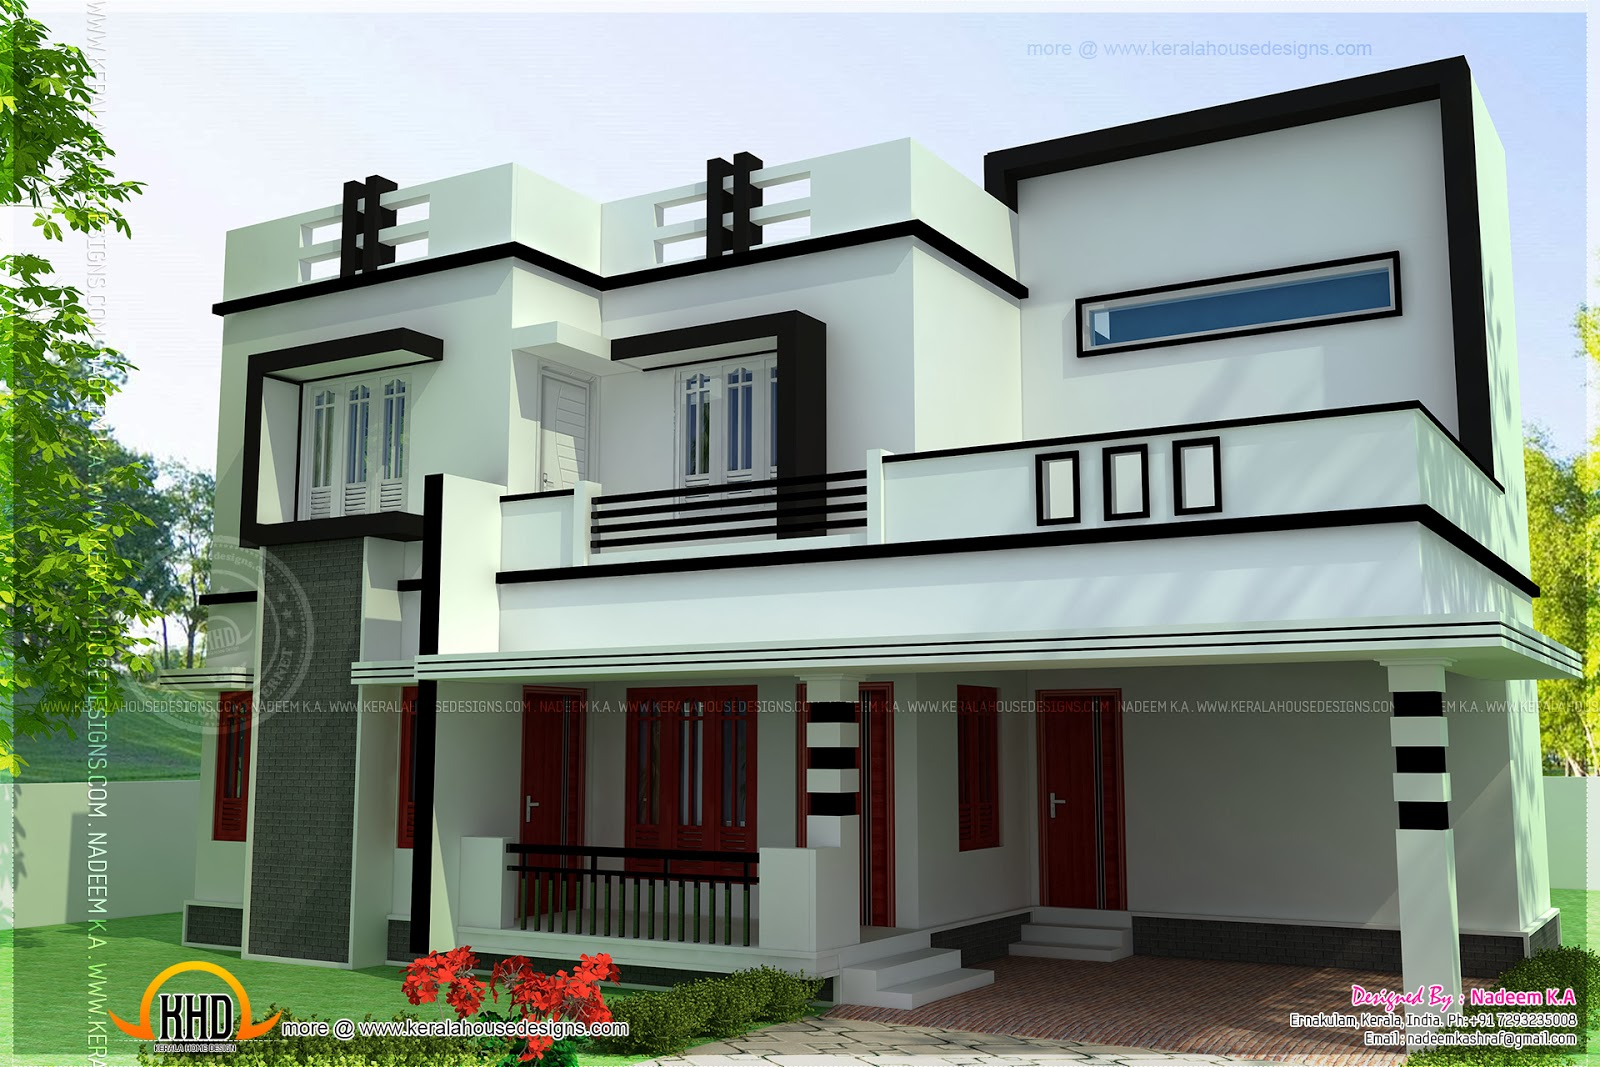 Flat roof 4 bedroom modern house kerala home design and for Contemporary style home plans